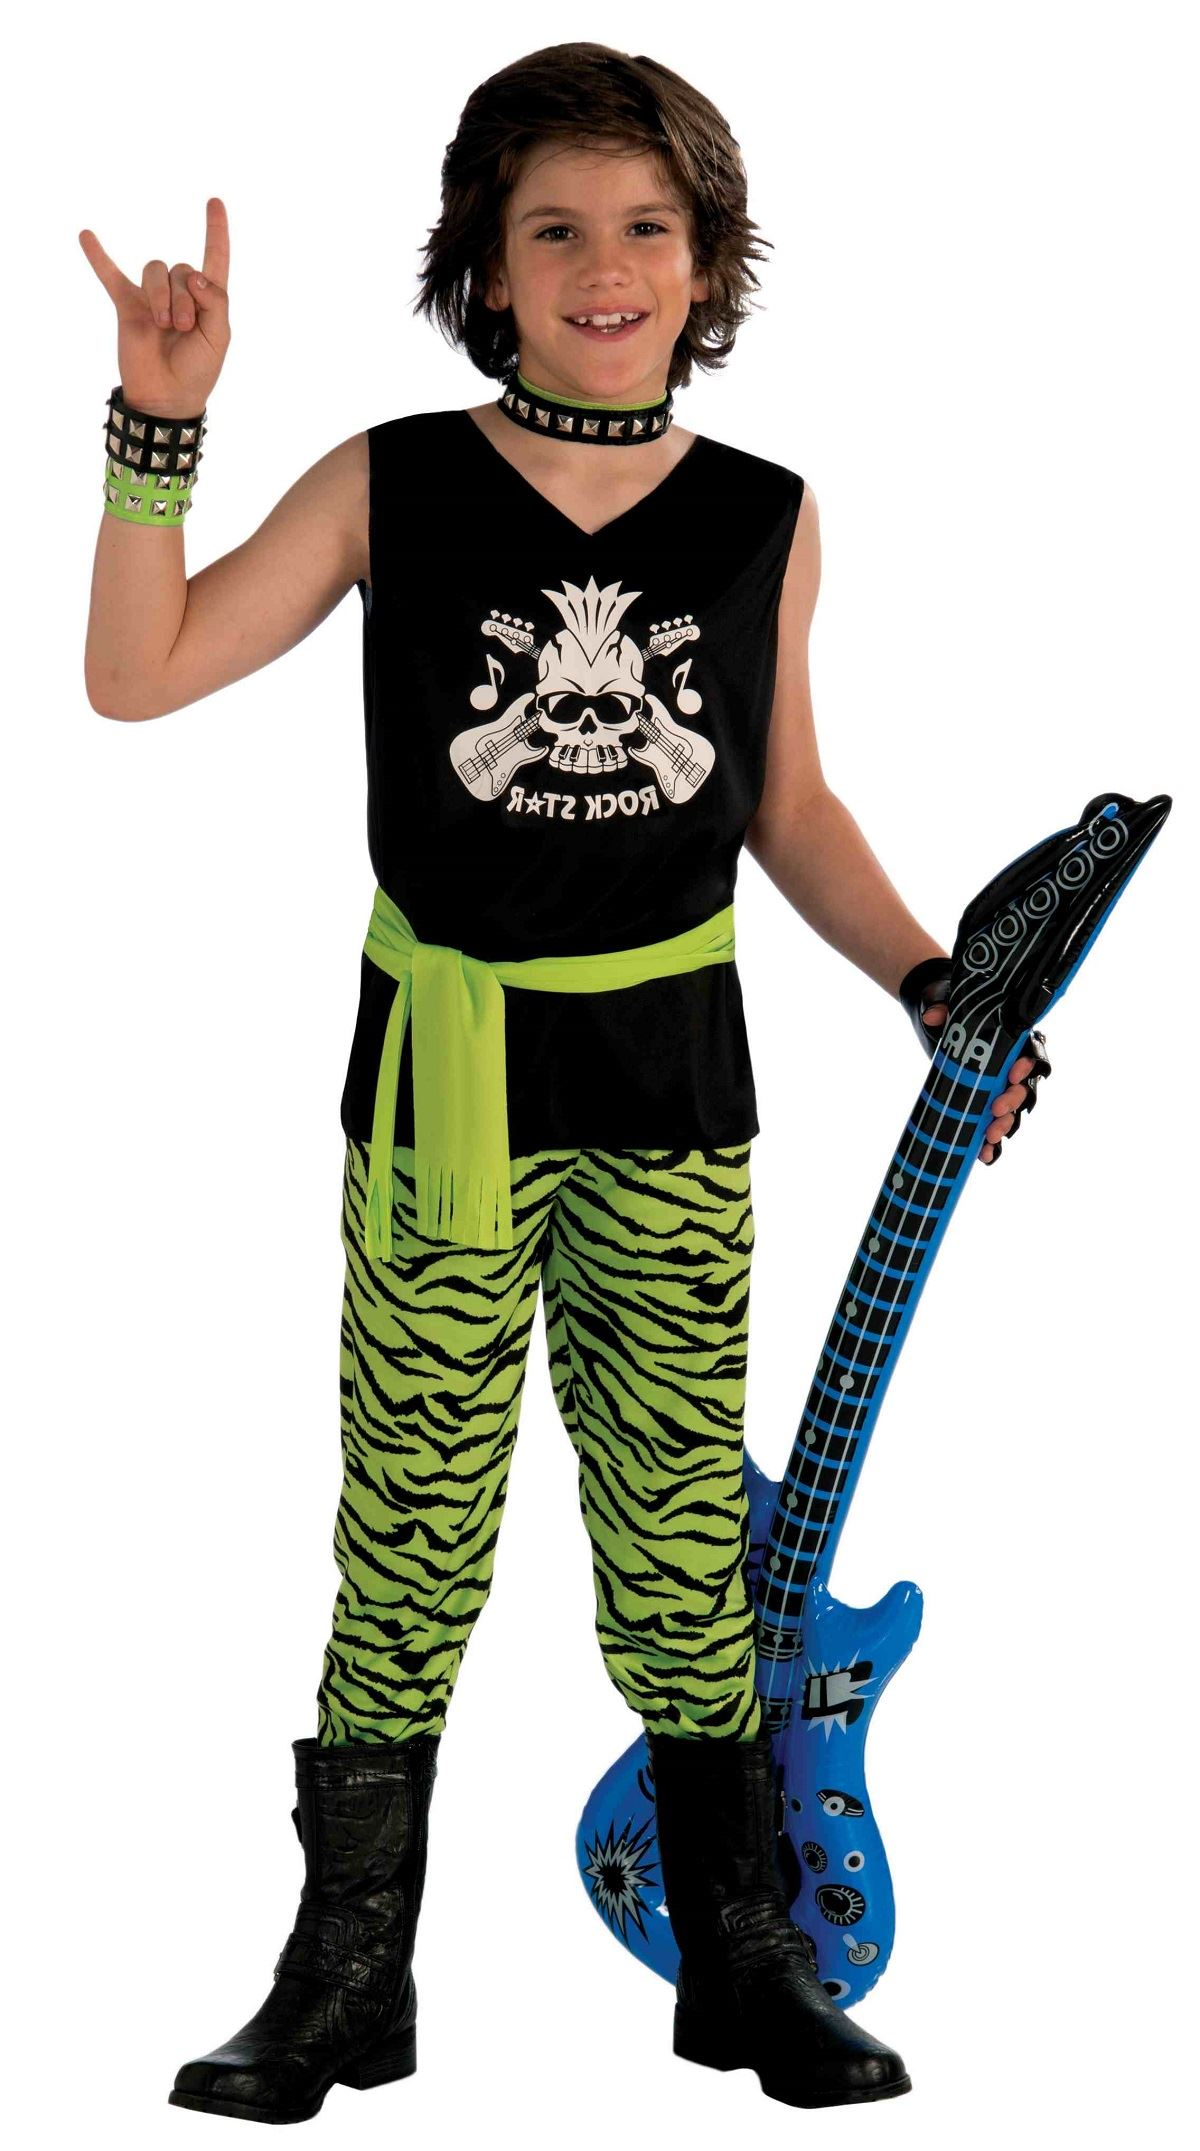 Rock Star Costumes Images - Reverse Search